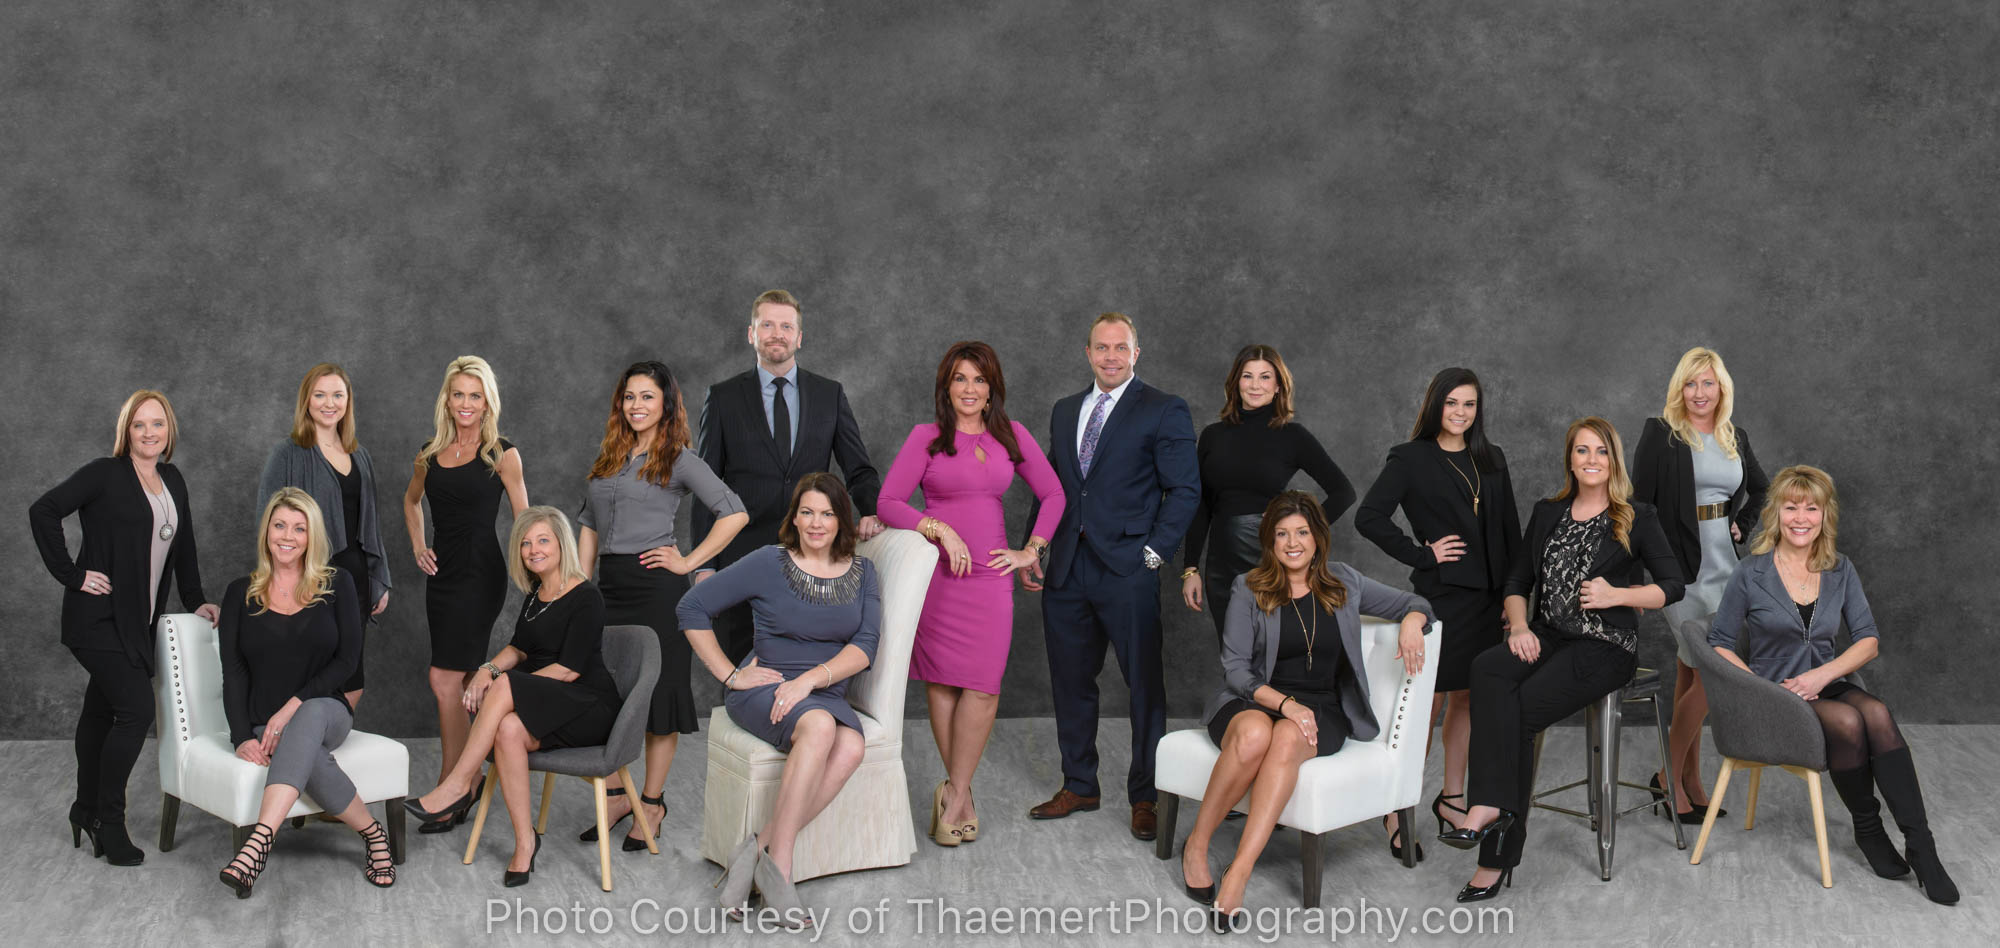 Large Real Estate Team Group Photo